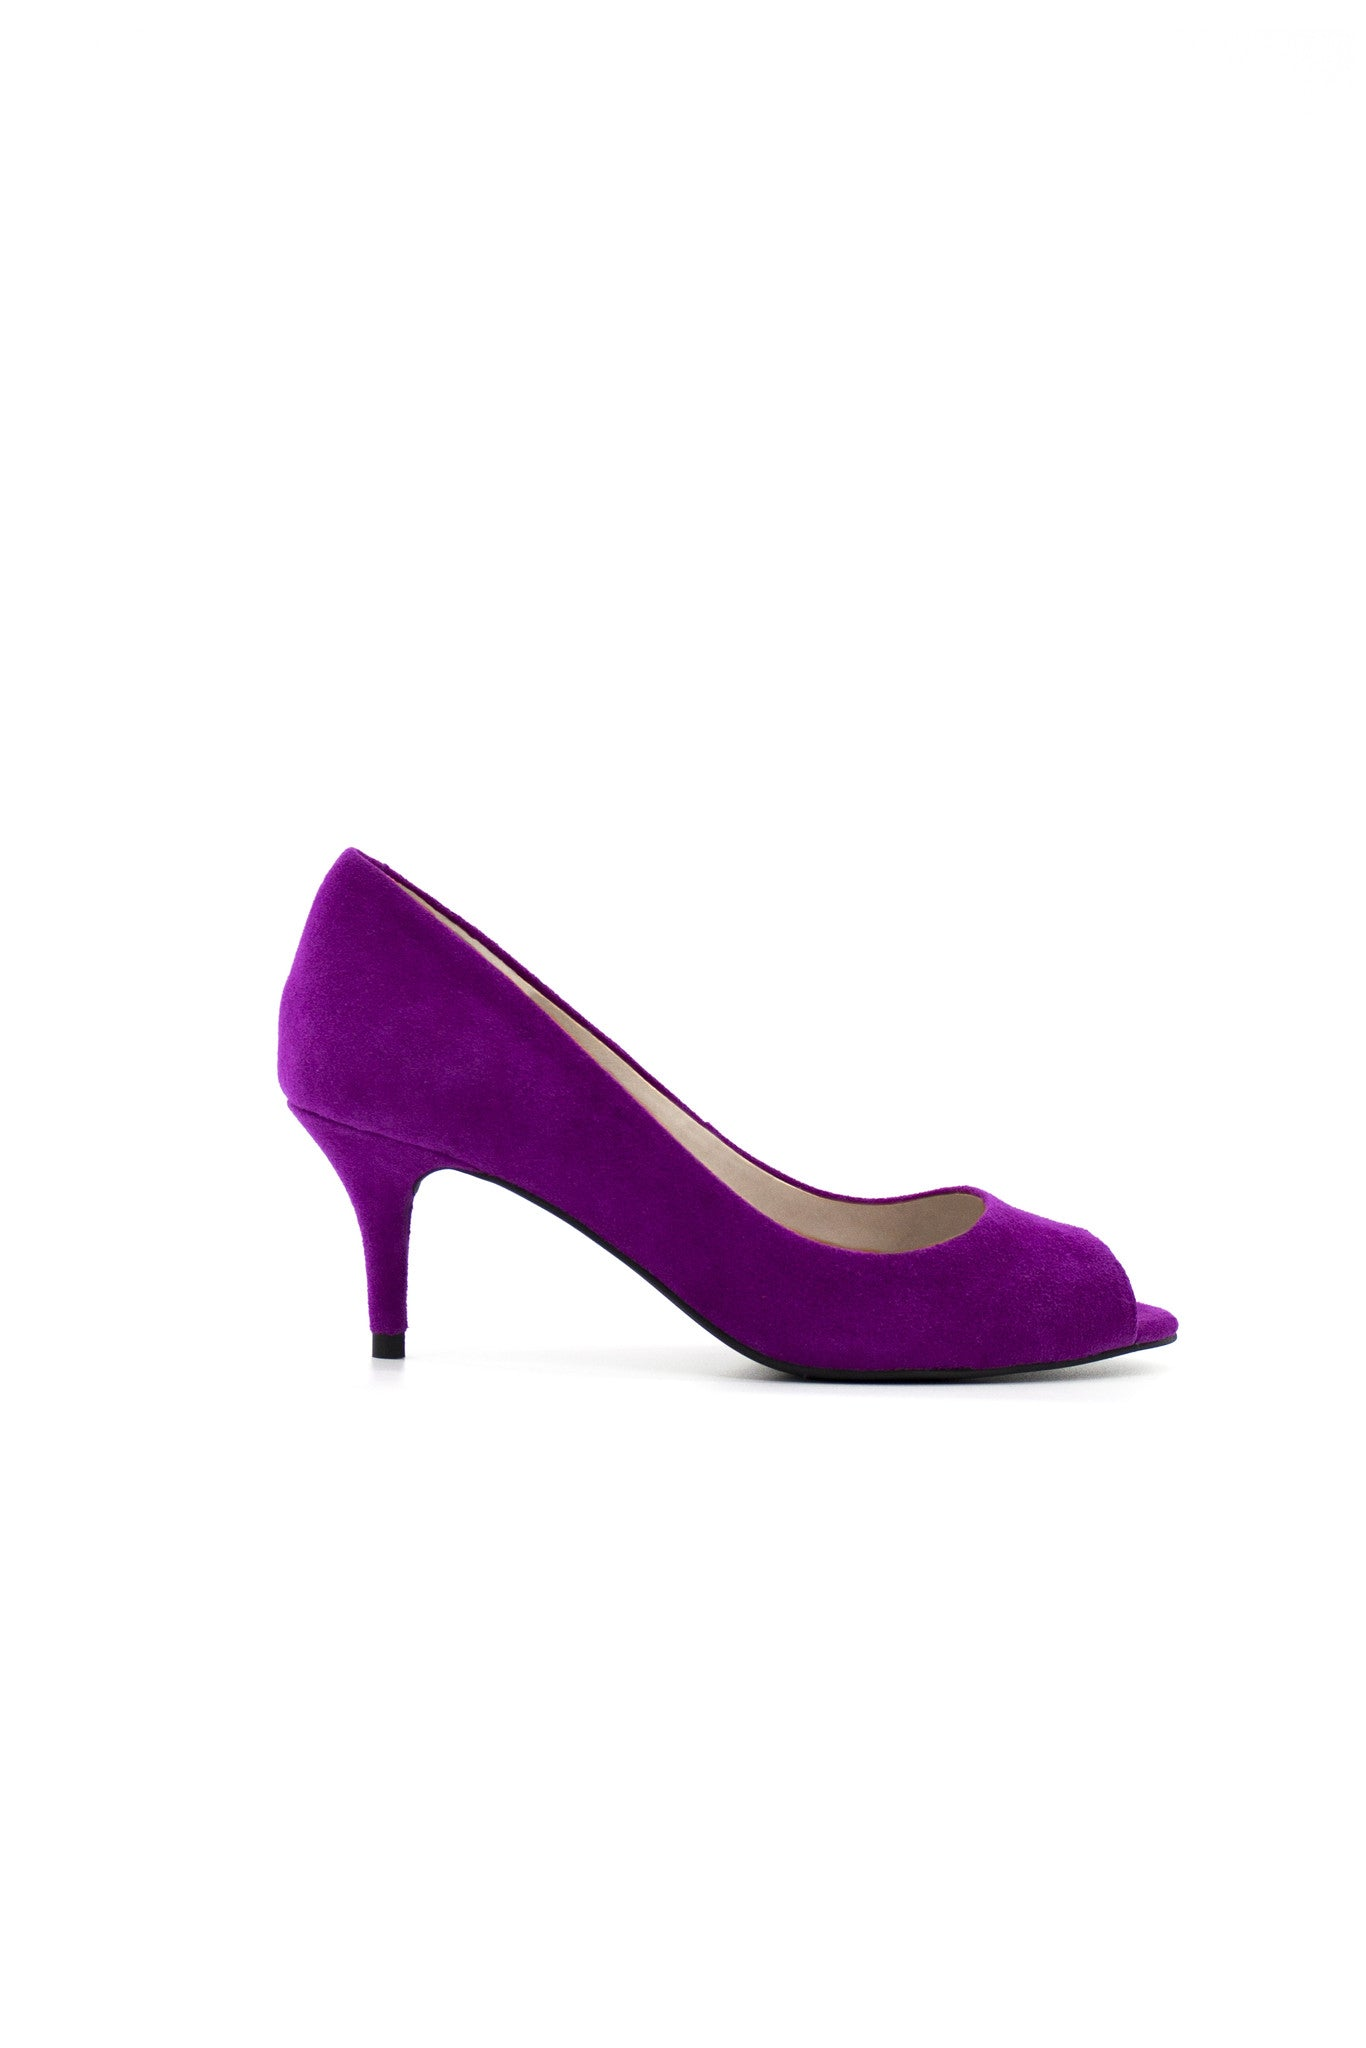 Emmie Peep-toe Pumps